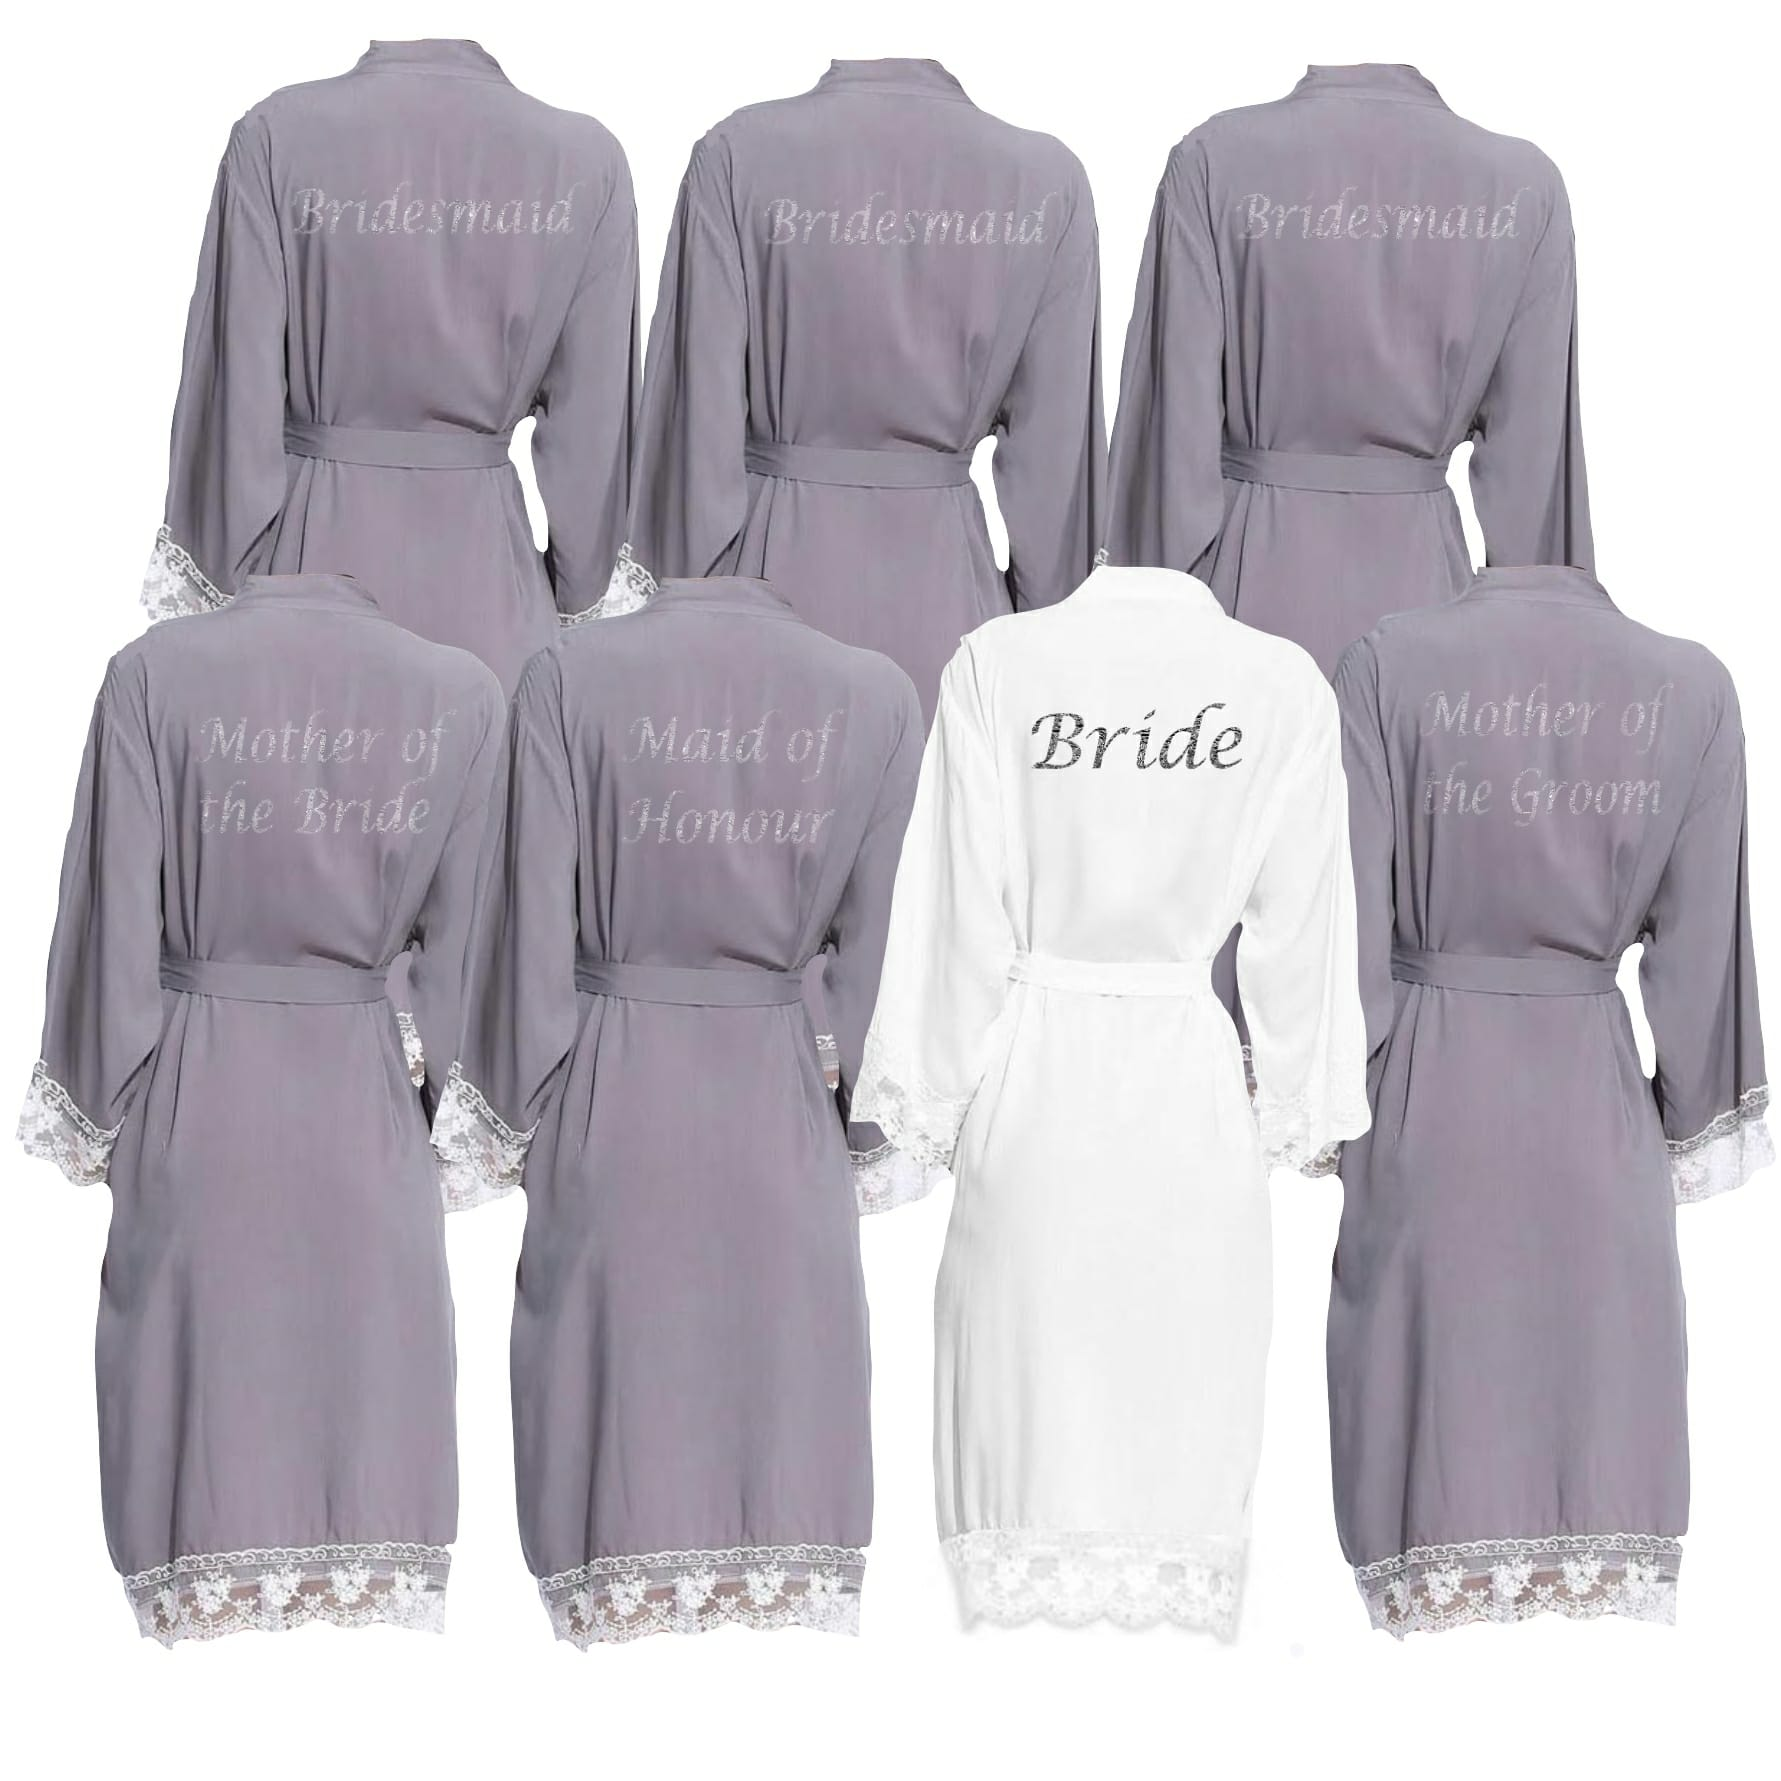 714f40c579b1 Grey lace cuff robe set - Personalised Dressing Gowns   Bridal Party ...